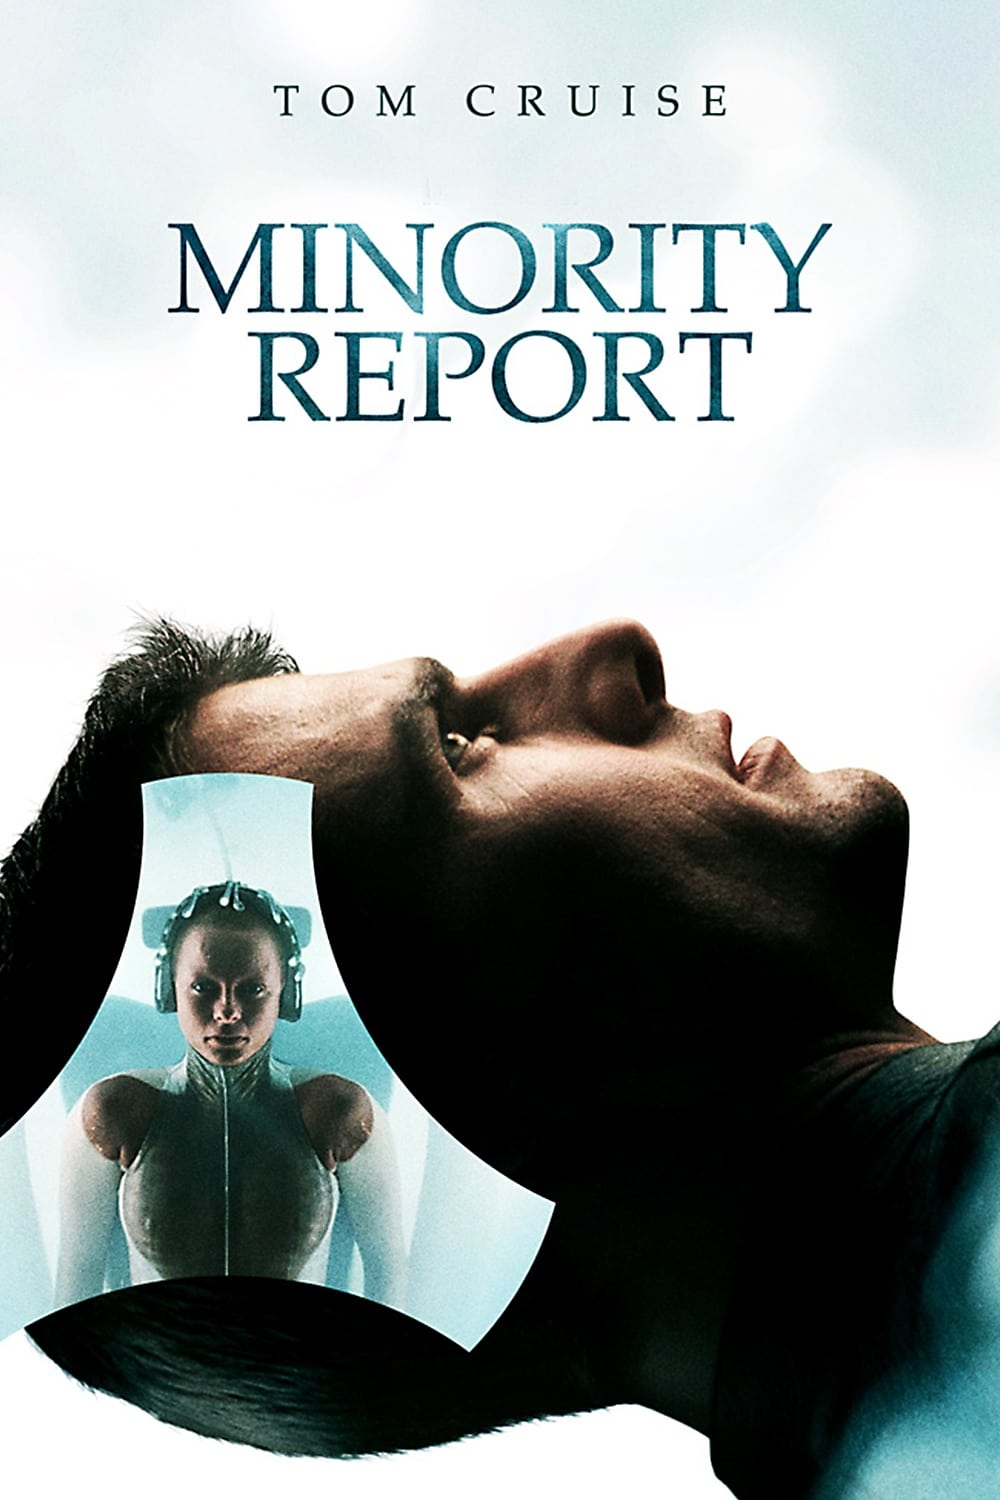 Minority Report 2002 BluRay 1080p [6.38 Gb] 720p [1.45 GB] 480p [700 MB] [Hindi DD 5.1 + English DD 5.1] | G-Drive